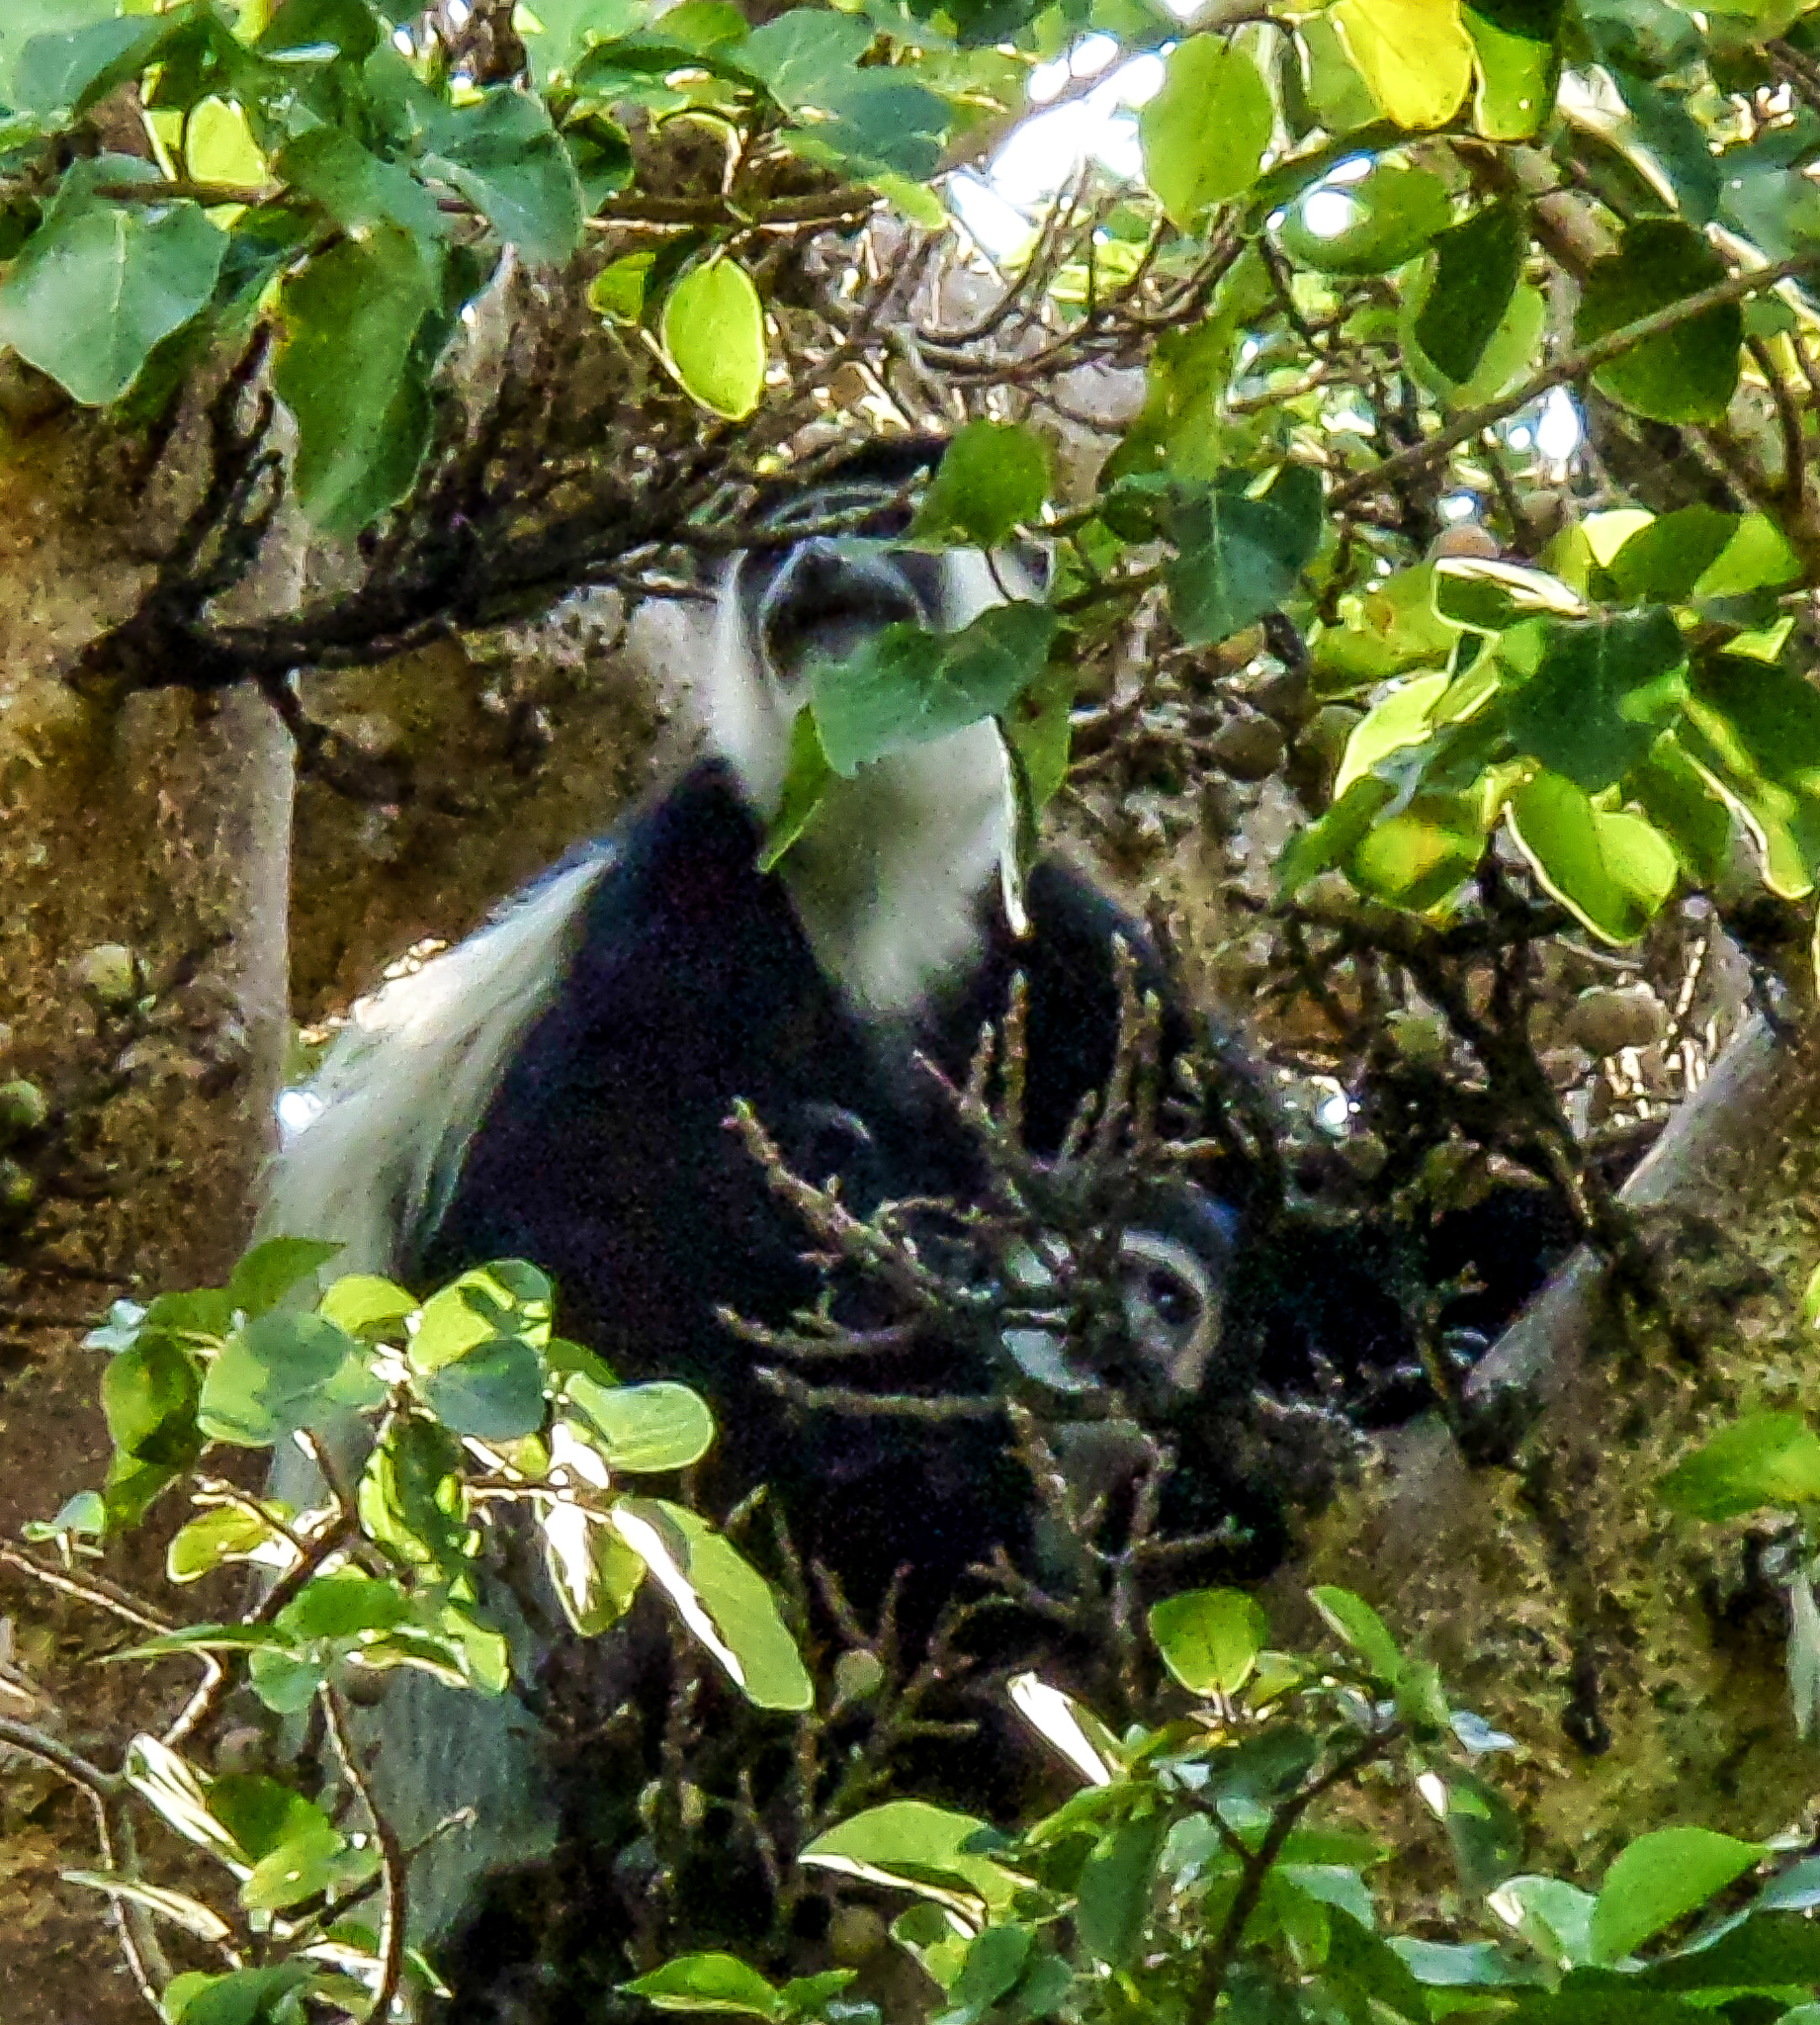 Colobus monkey with child in treetop